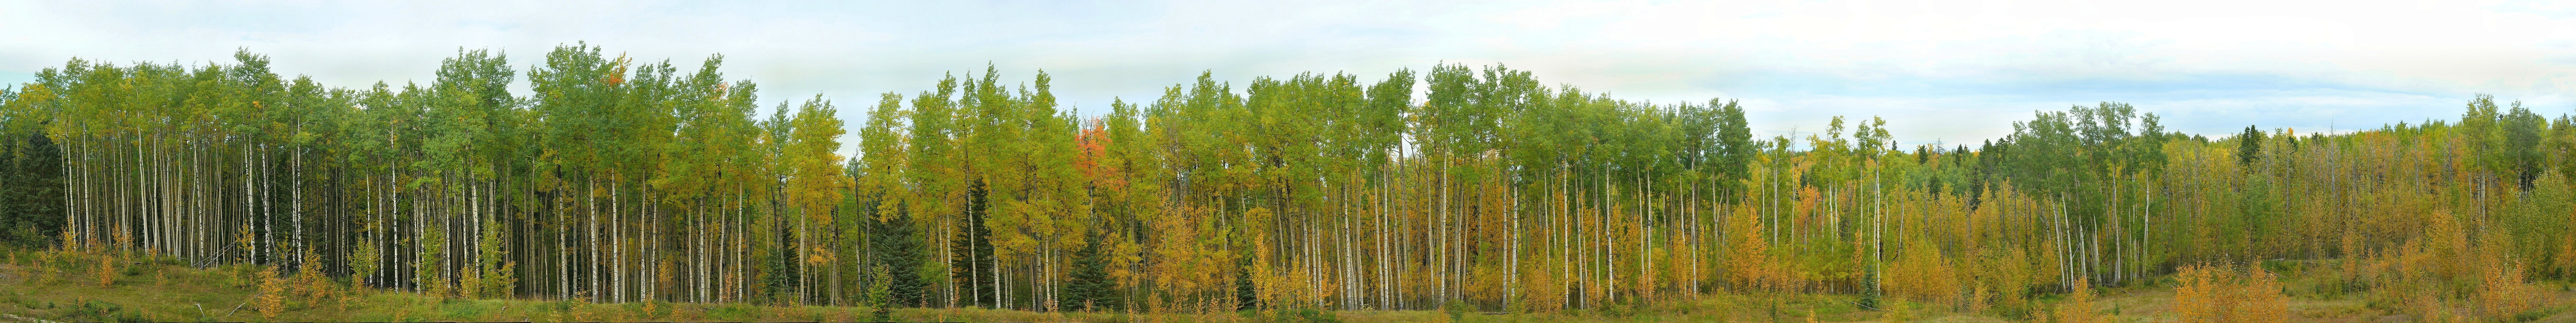 obed aspens cropped.jpg